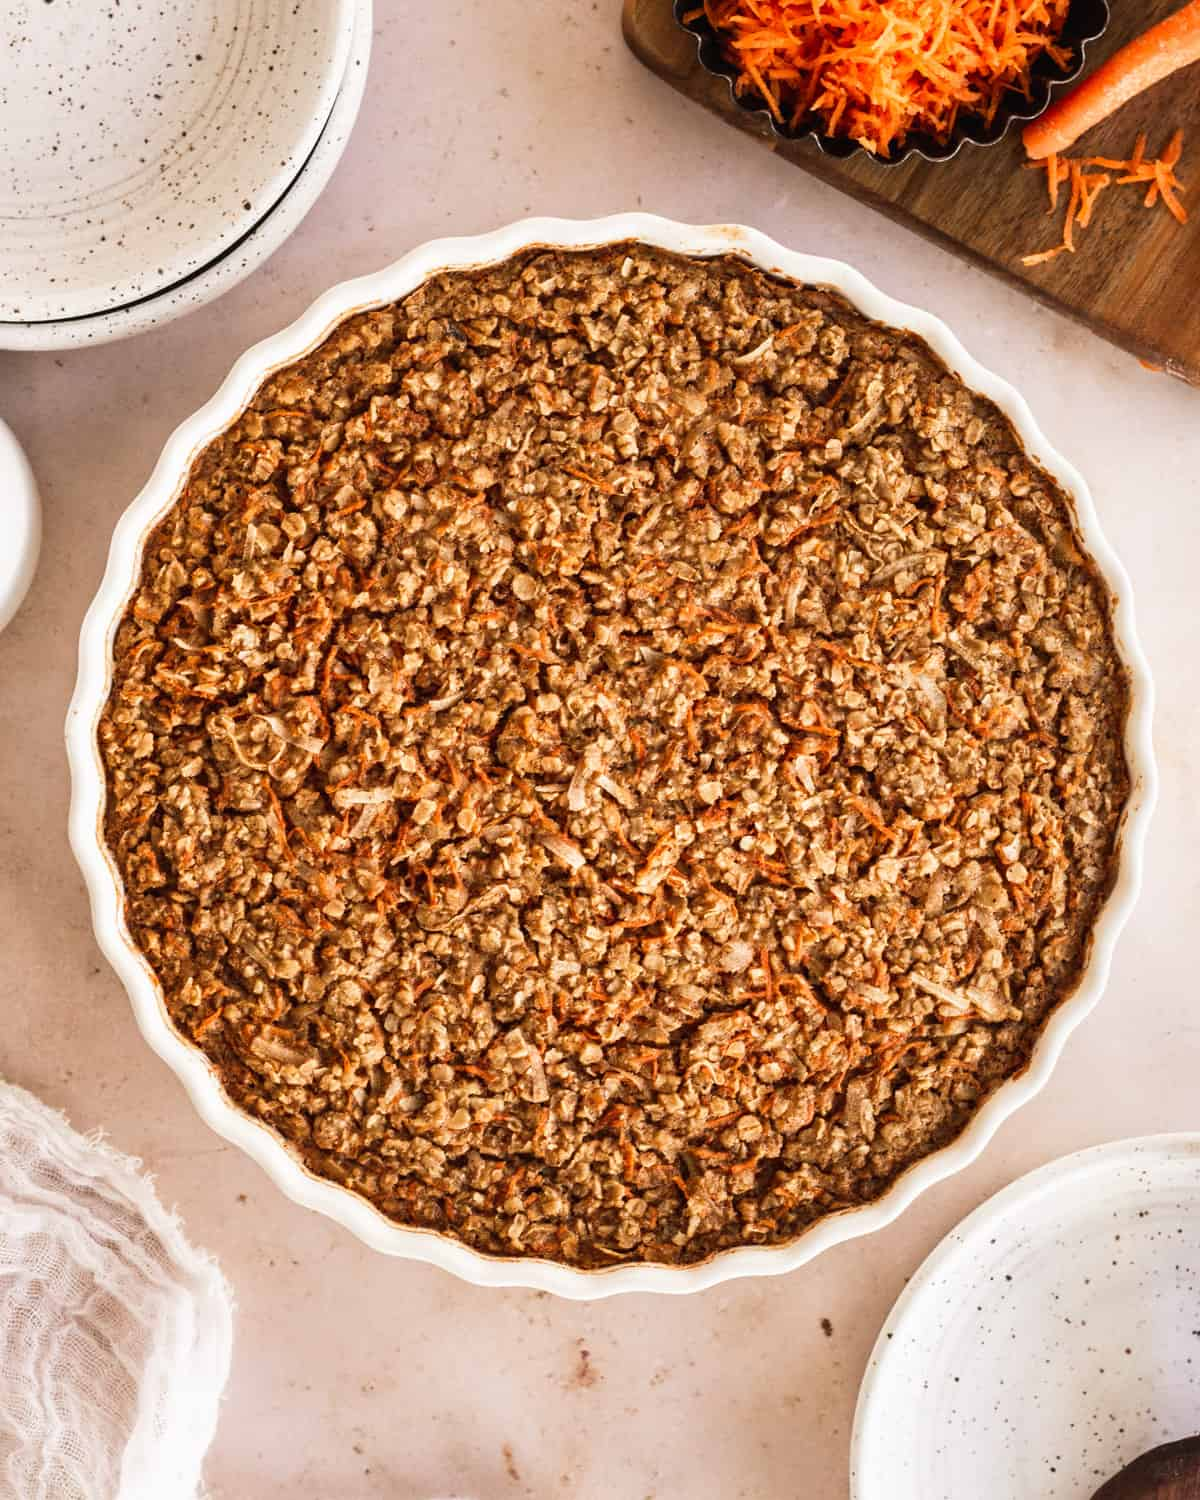 overhead view of baked oatmeal right out of the oven with shredded carrots on the side